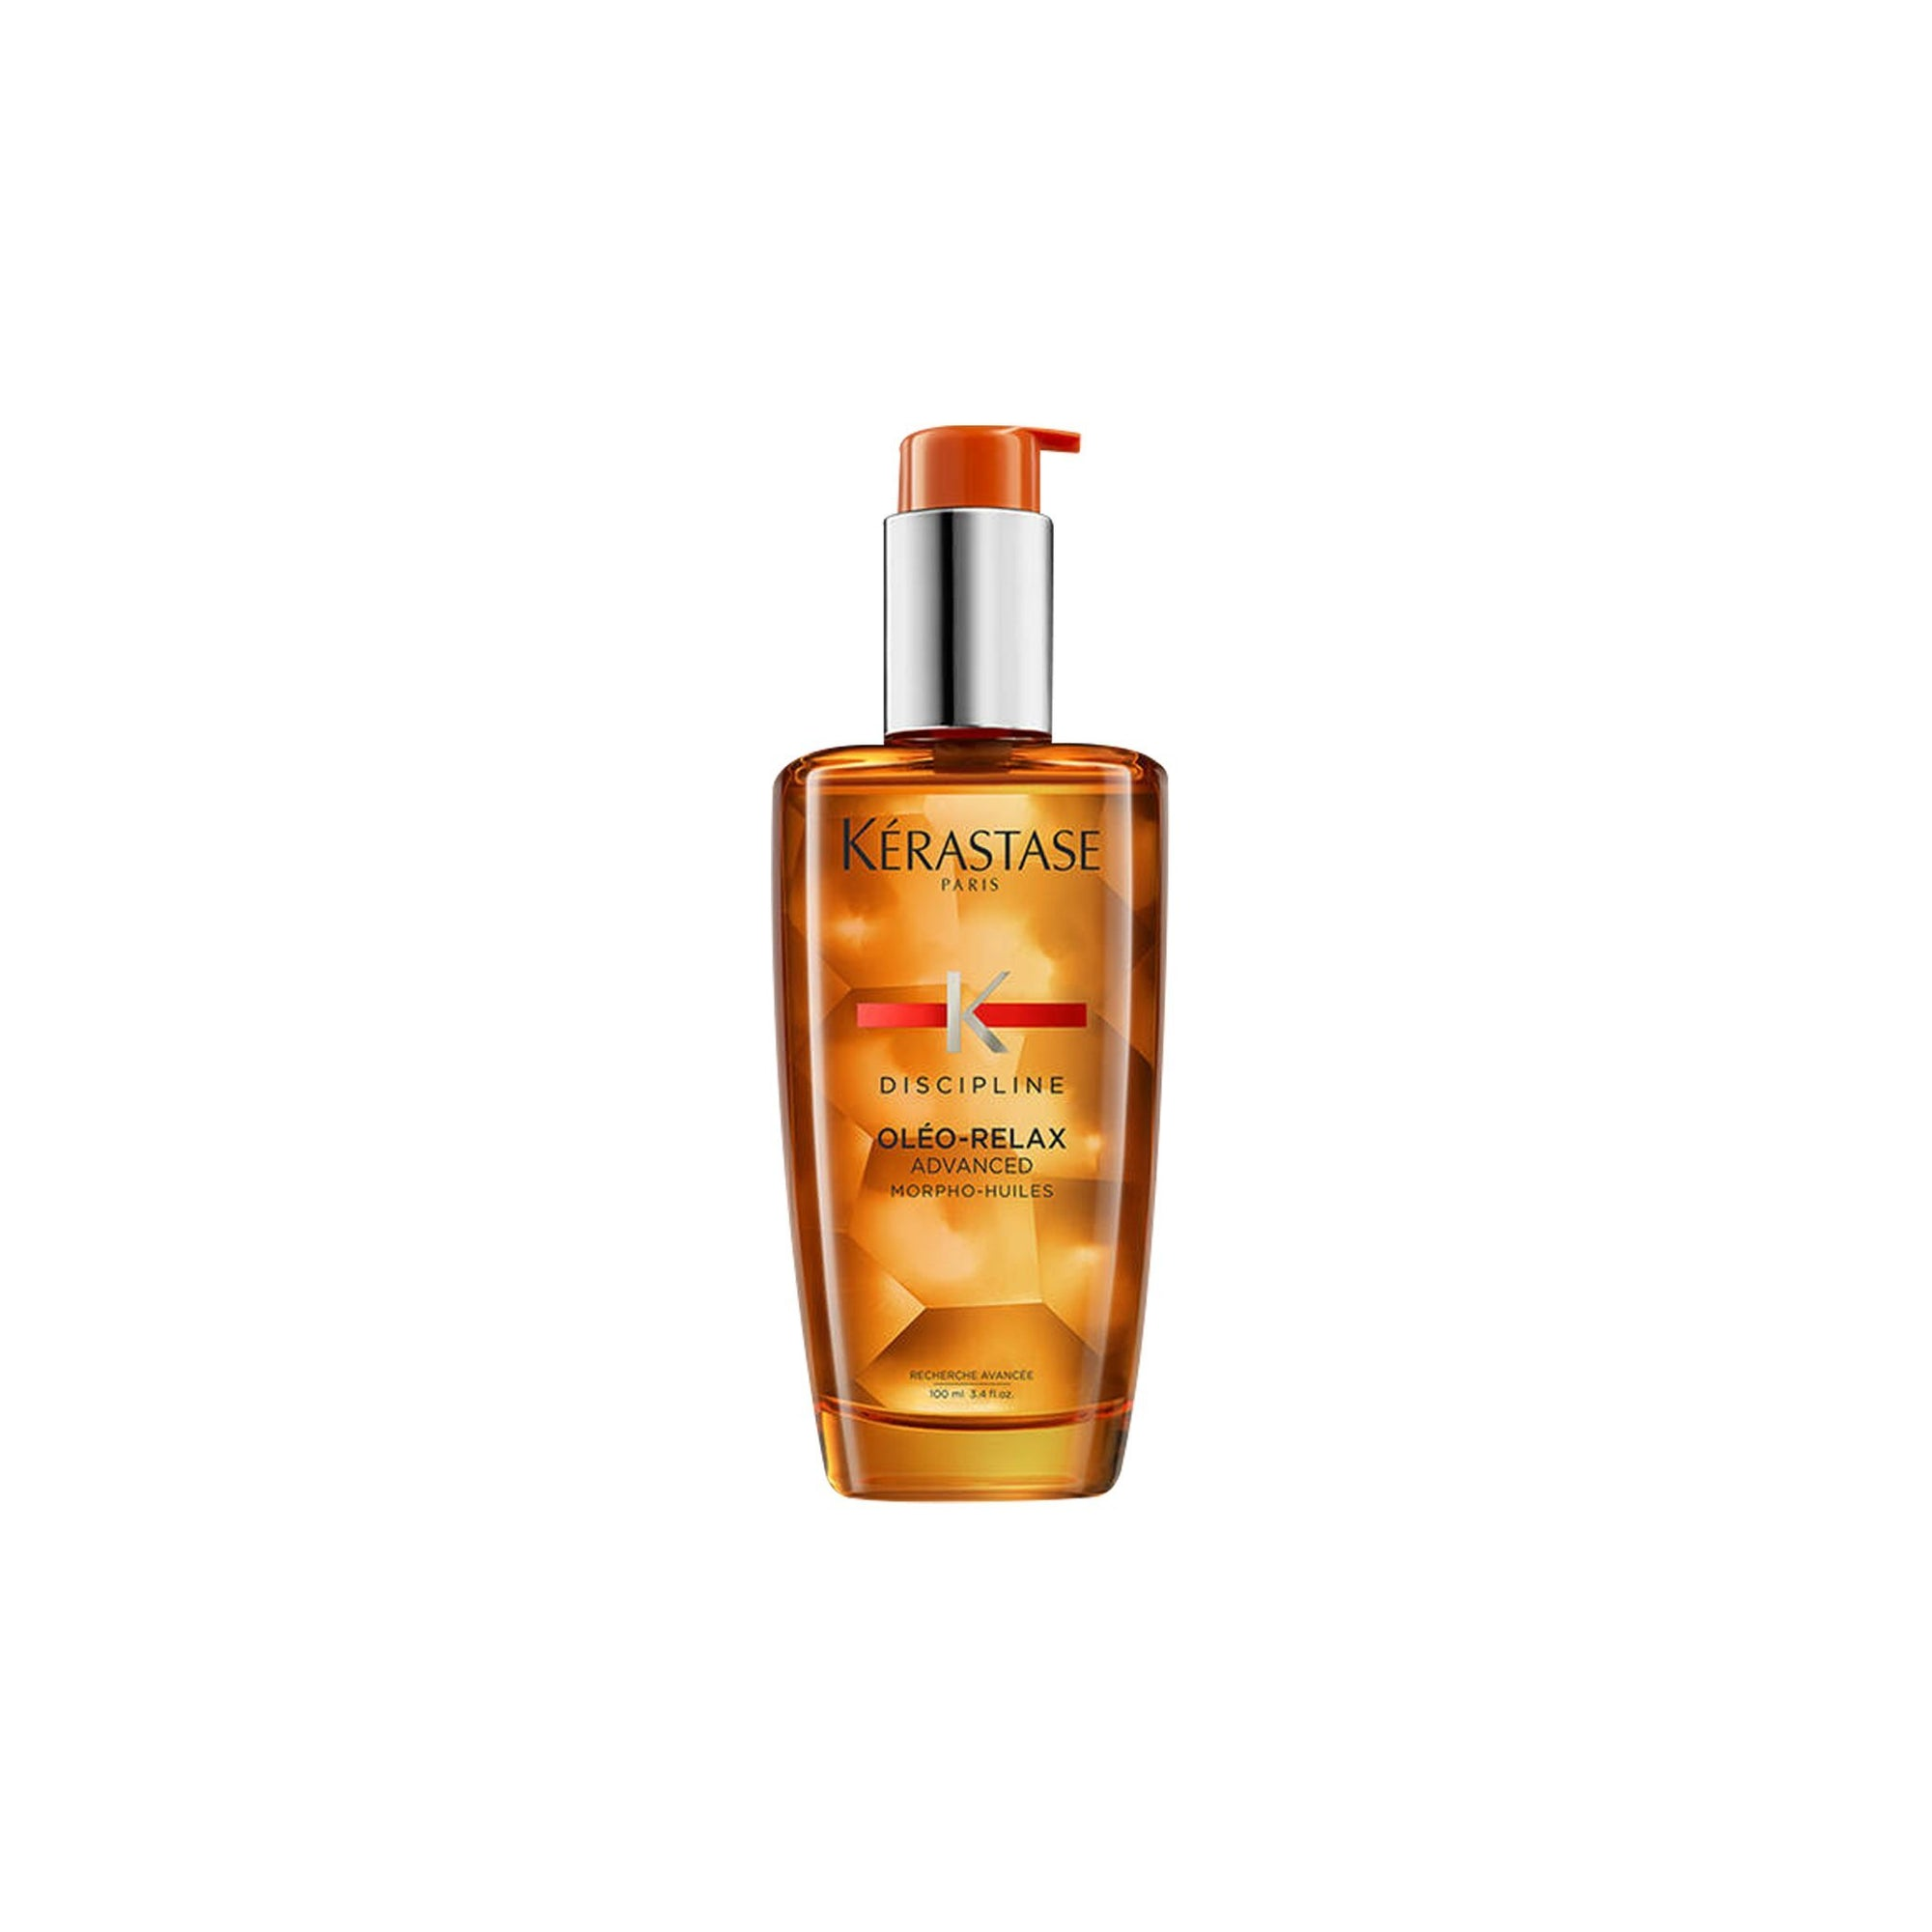 Kérastase Discipline Oleo-Relax Advanced Hair Oil 100ml